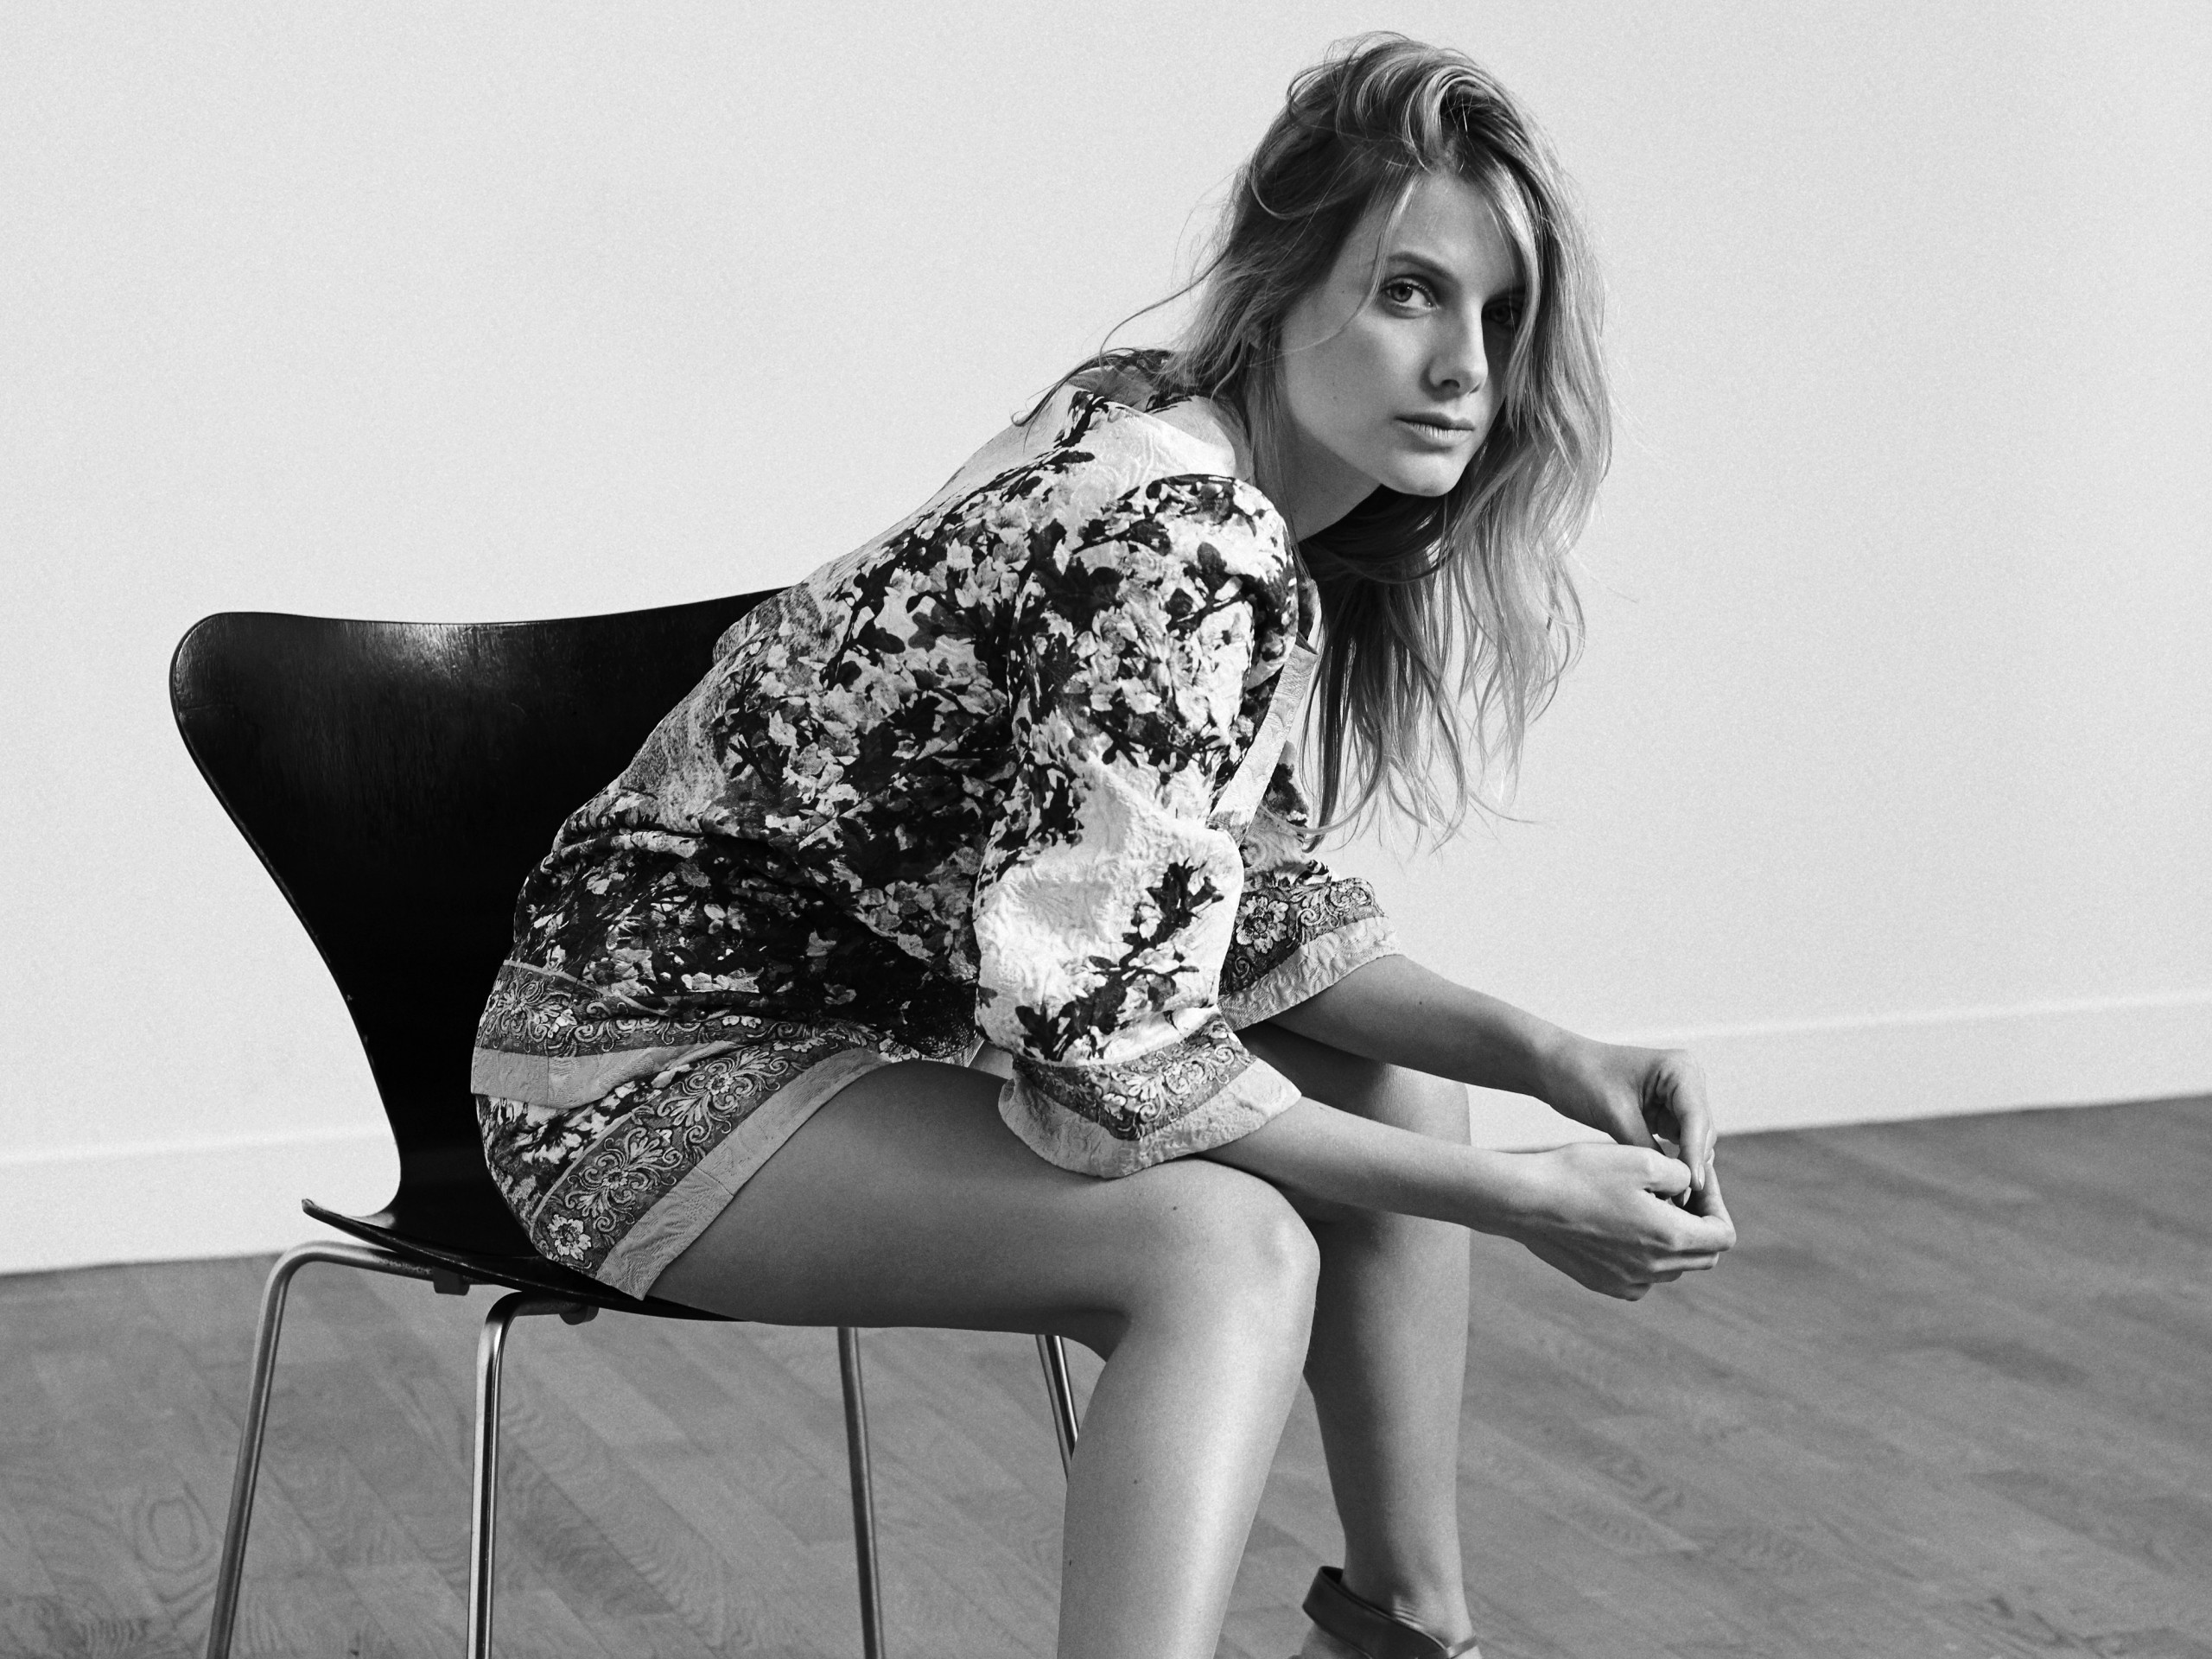 monochrome melanie laurent wallpaper 53763